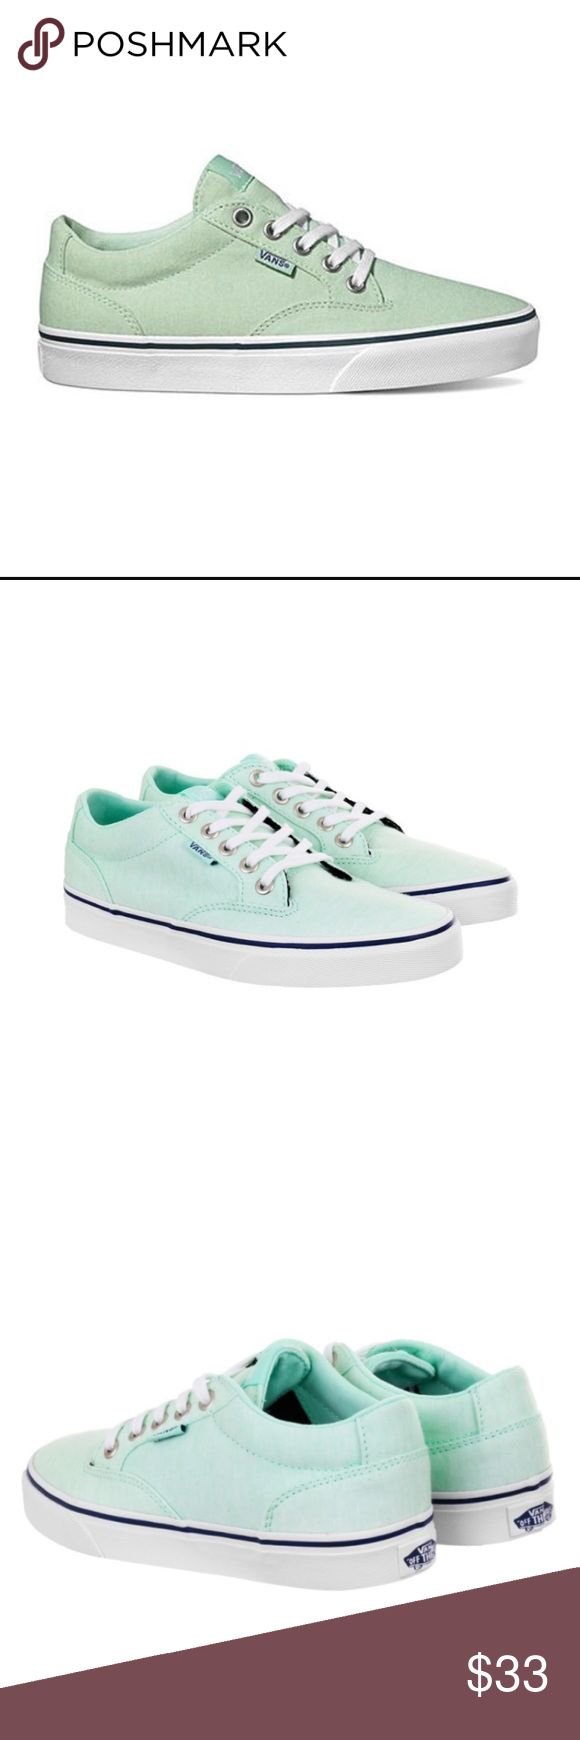 Vans Winston Skate Shoes Pretty pale green Vans skate shoes. Brand new with tags! Smoke free home. No trades. Vans Shoes Sneakers